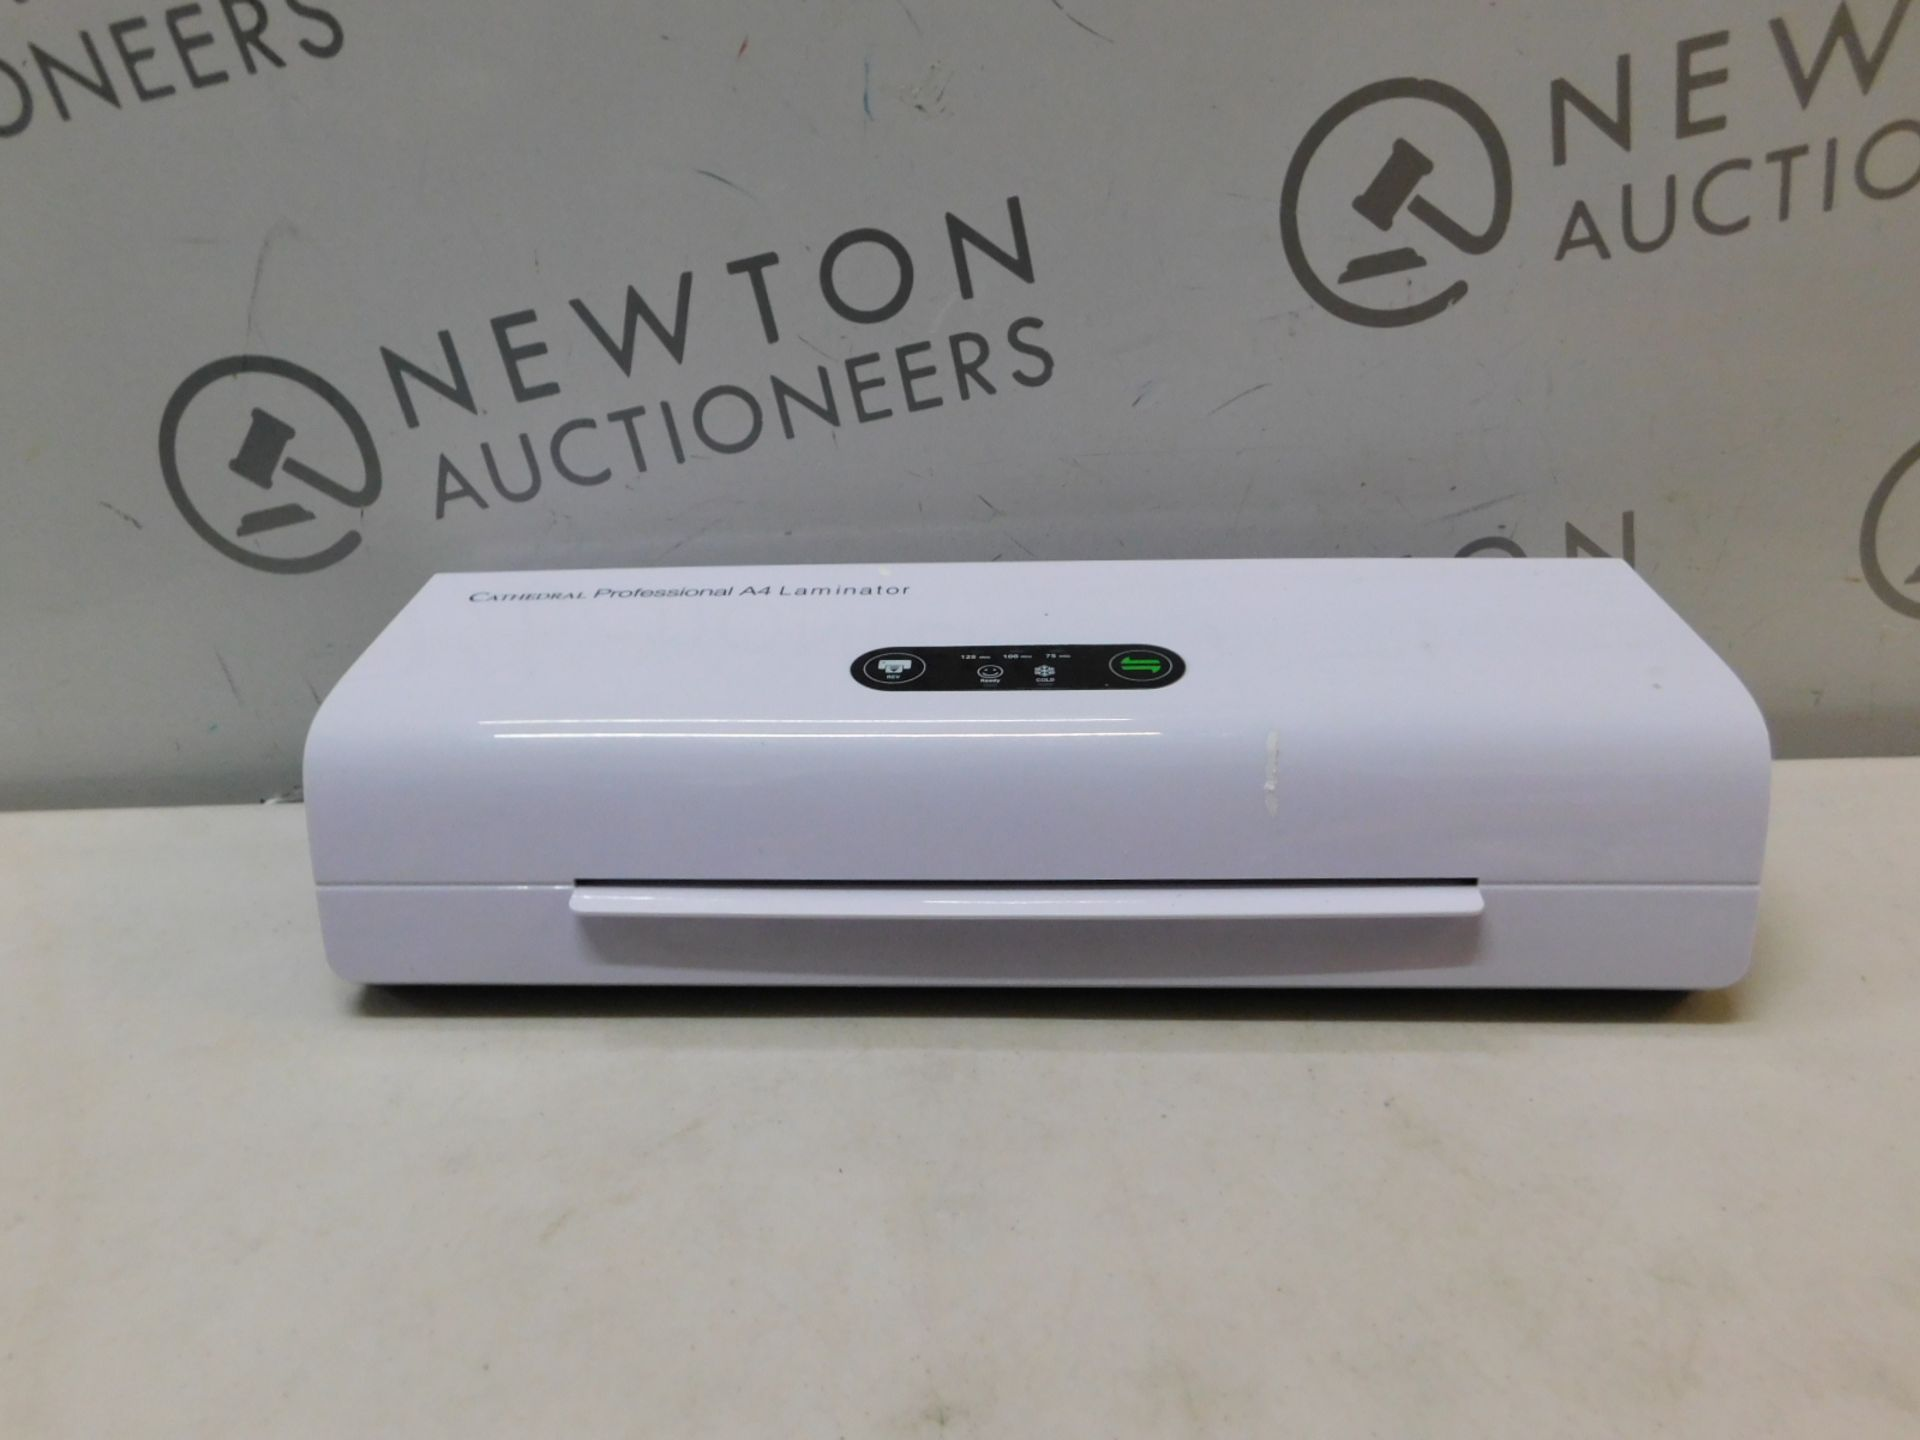 1 CATHEDRAL TIMESAVER PROFESSIONAL A4 LAMINATOR RRP £64.99